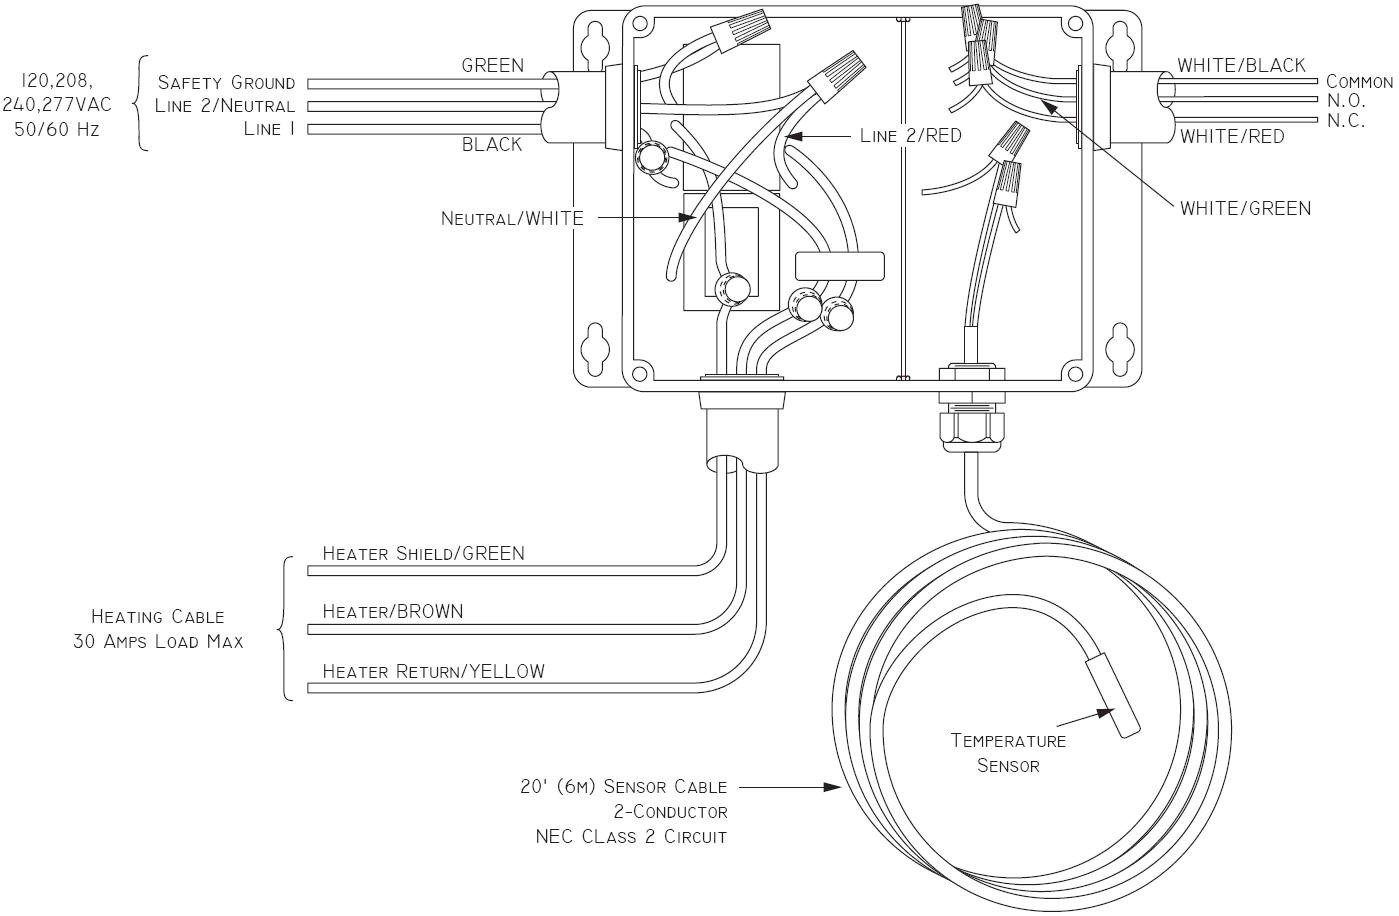 Baseboard Heater Wire Diagram